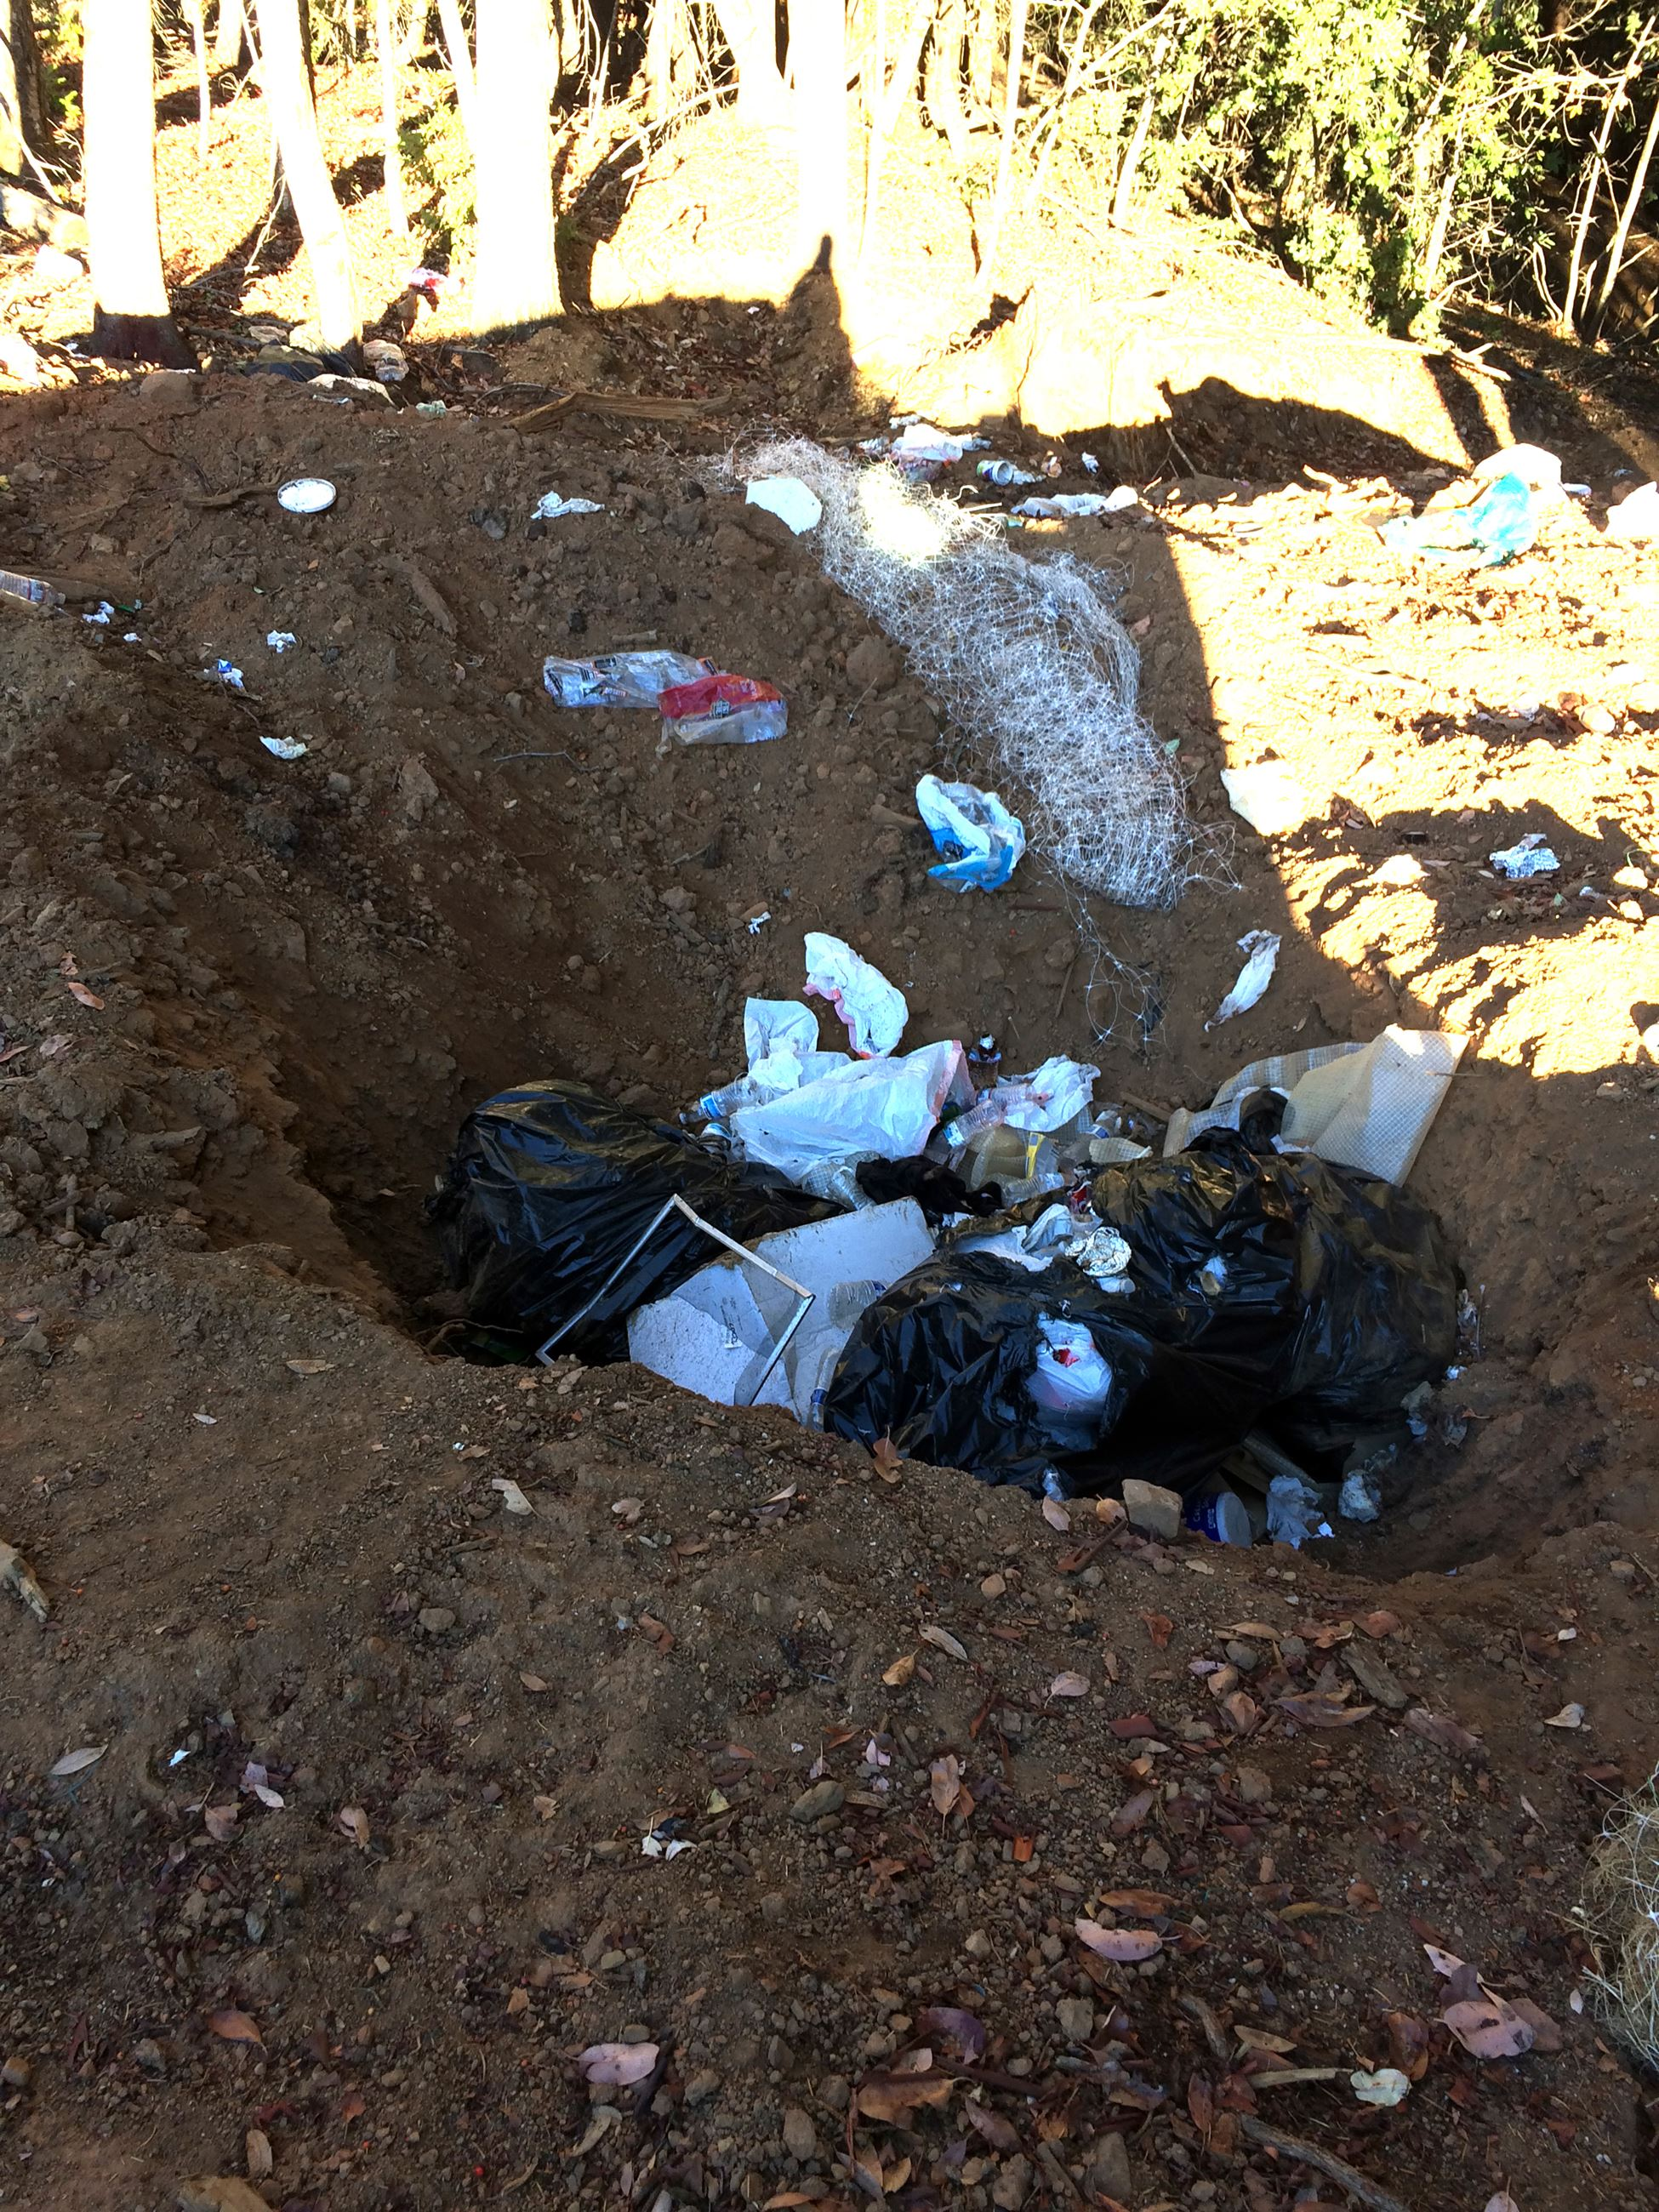 Trash found on the ground during the Rancho Sequoia search warrant.